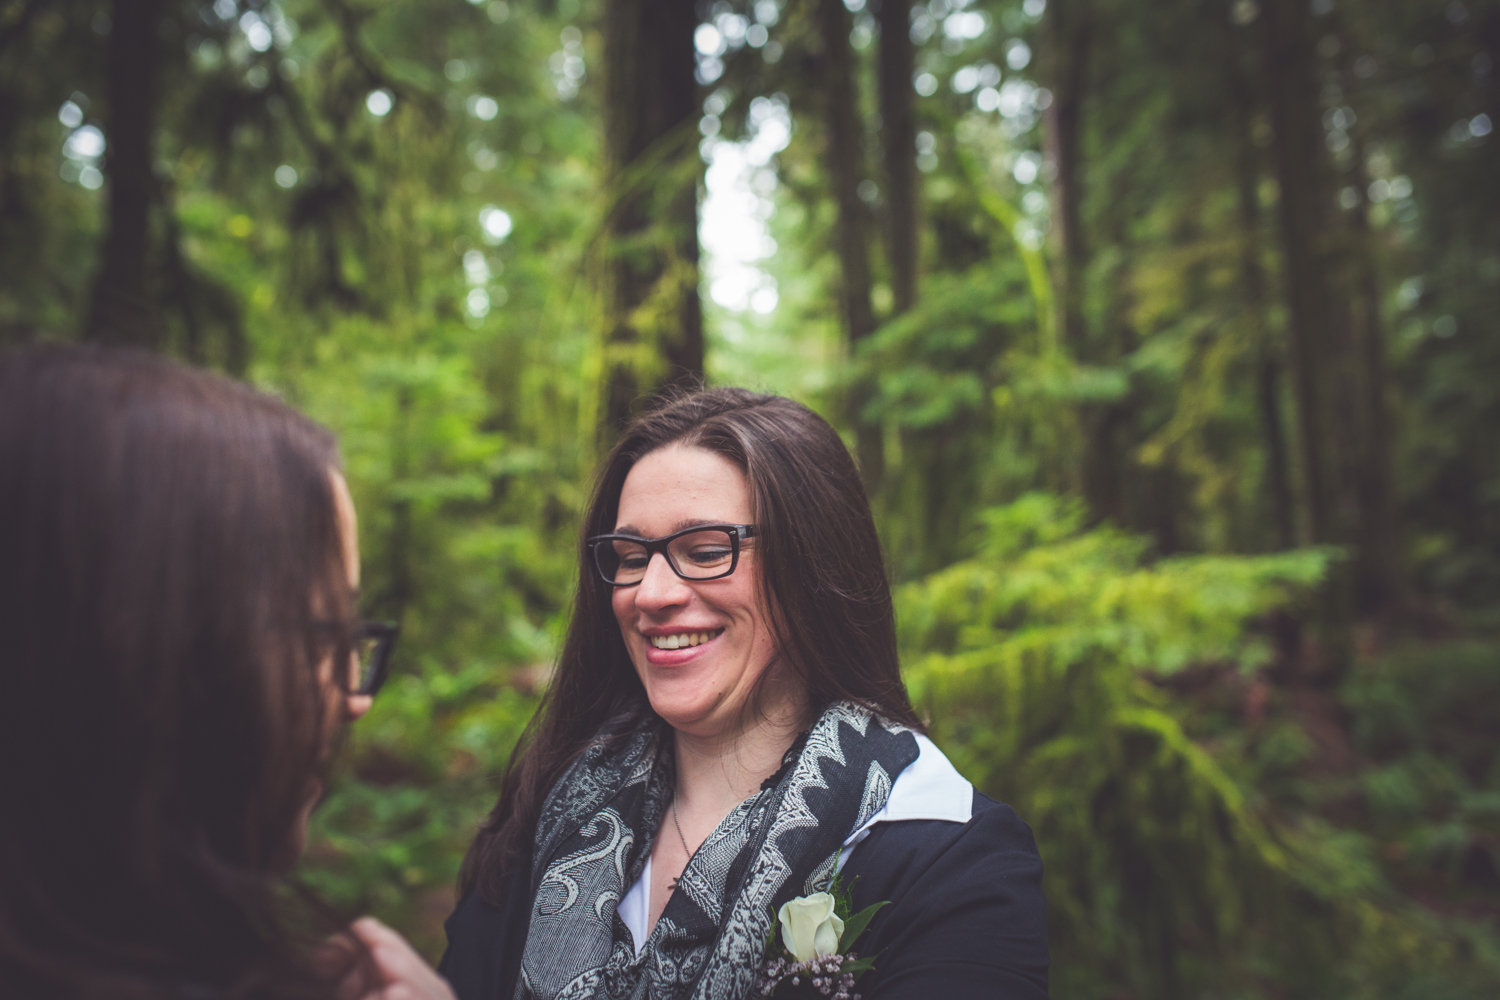 cathedral-grove-elopement-photos-14.jpg